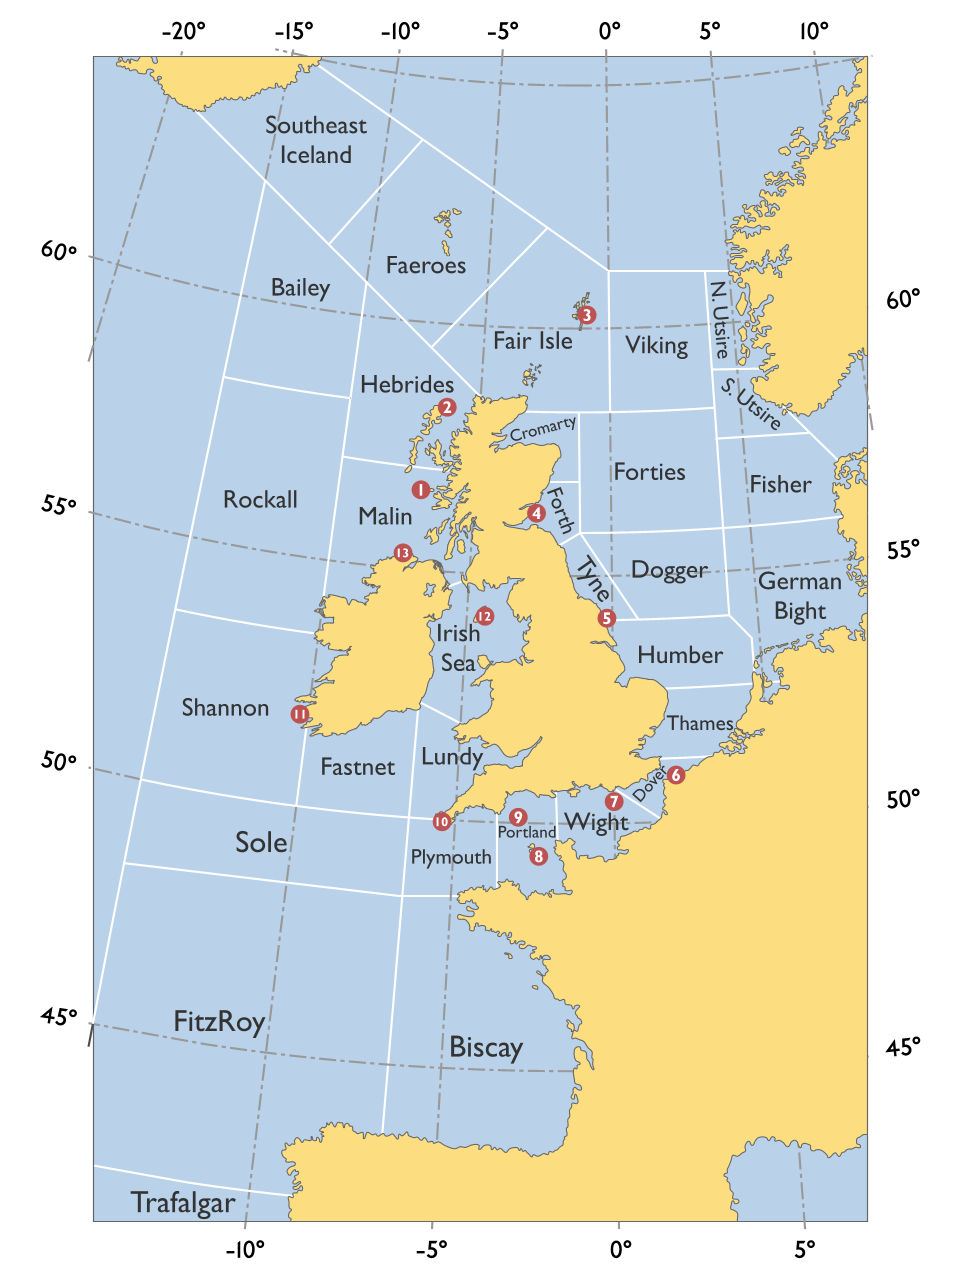 http://upload.wikimedia.org/wikipedia/commons/7/75/UK_shipping_forecast_zones.png